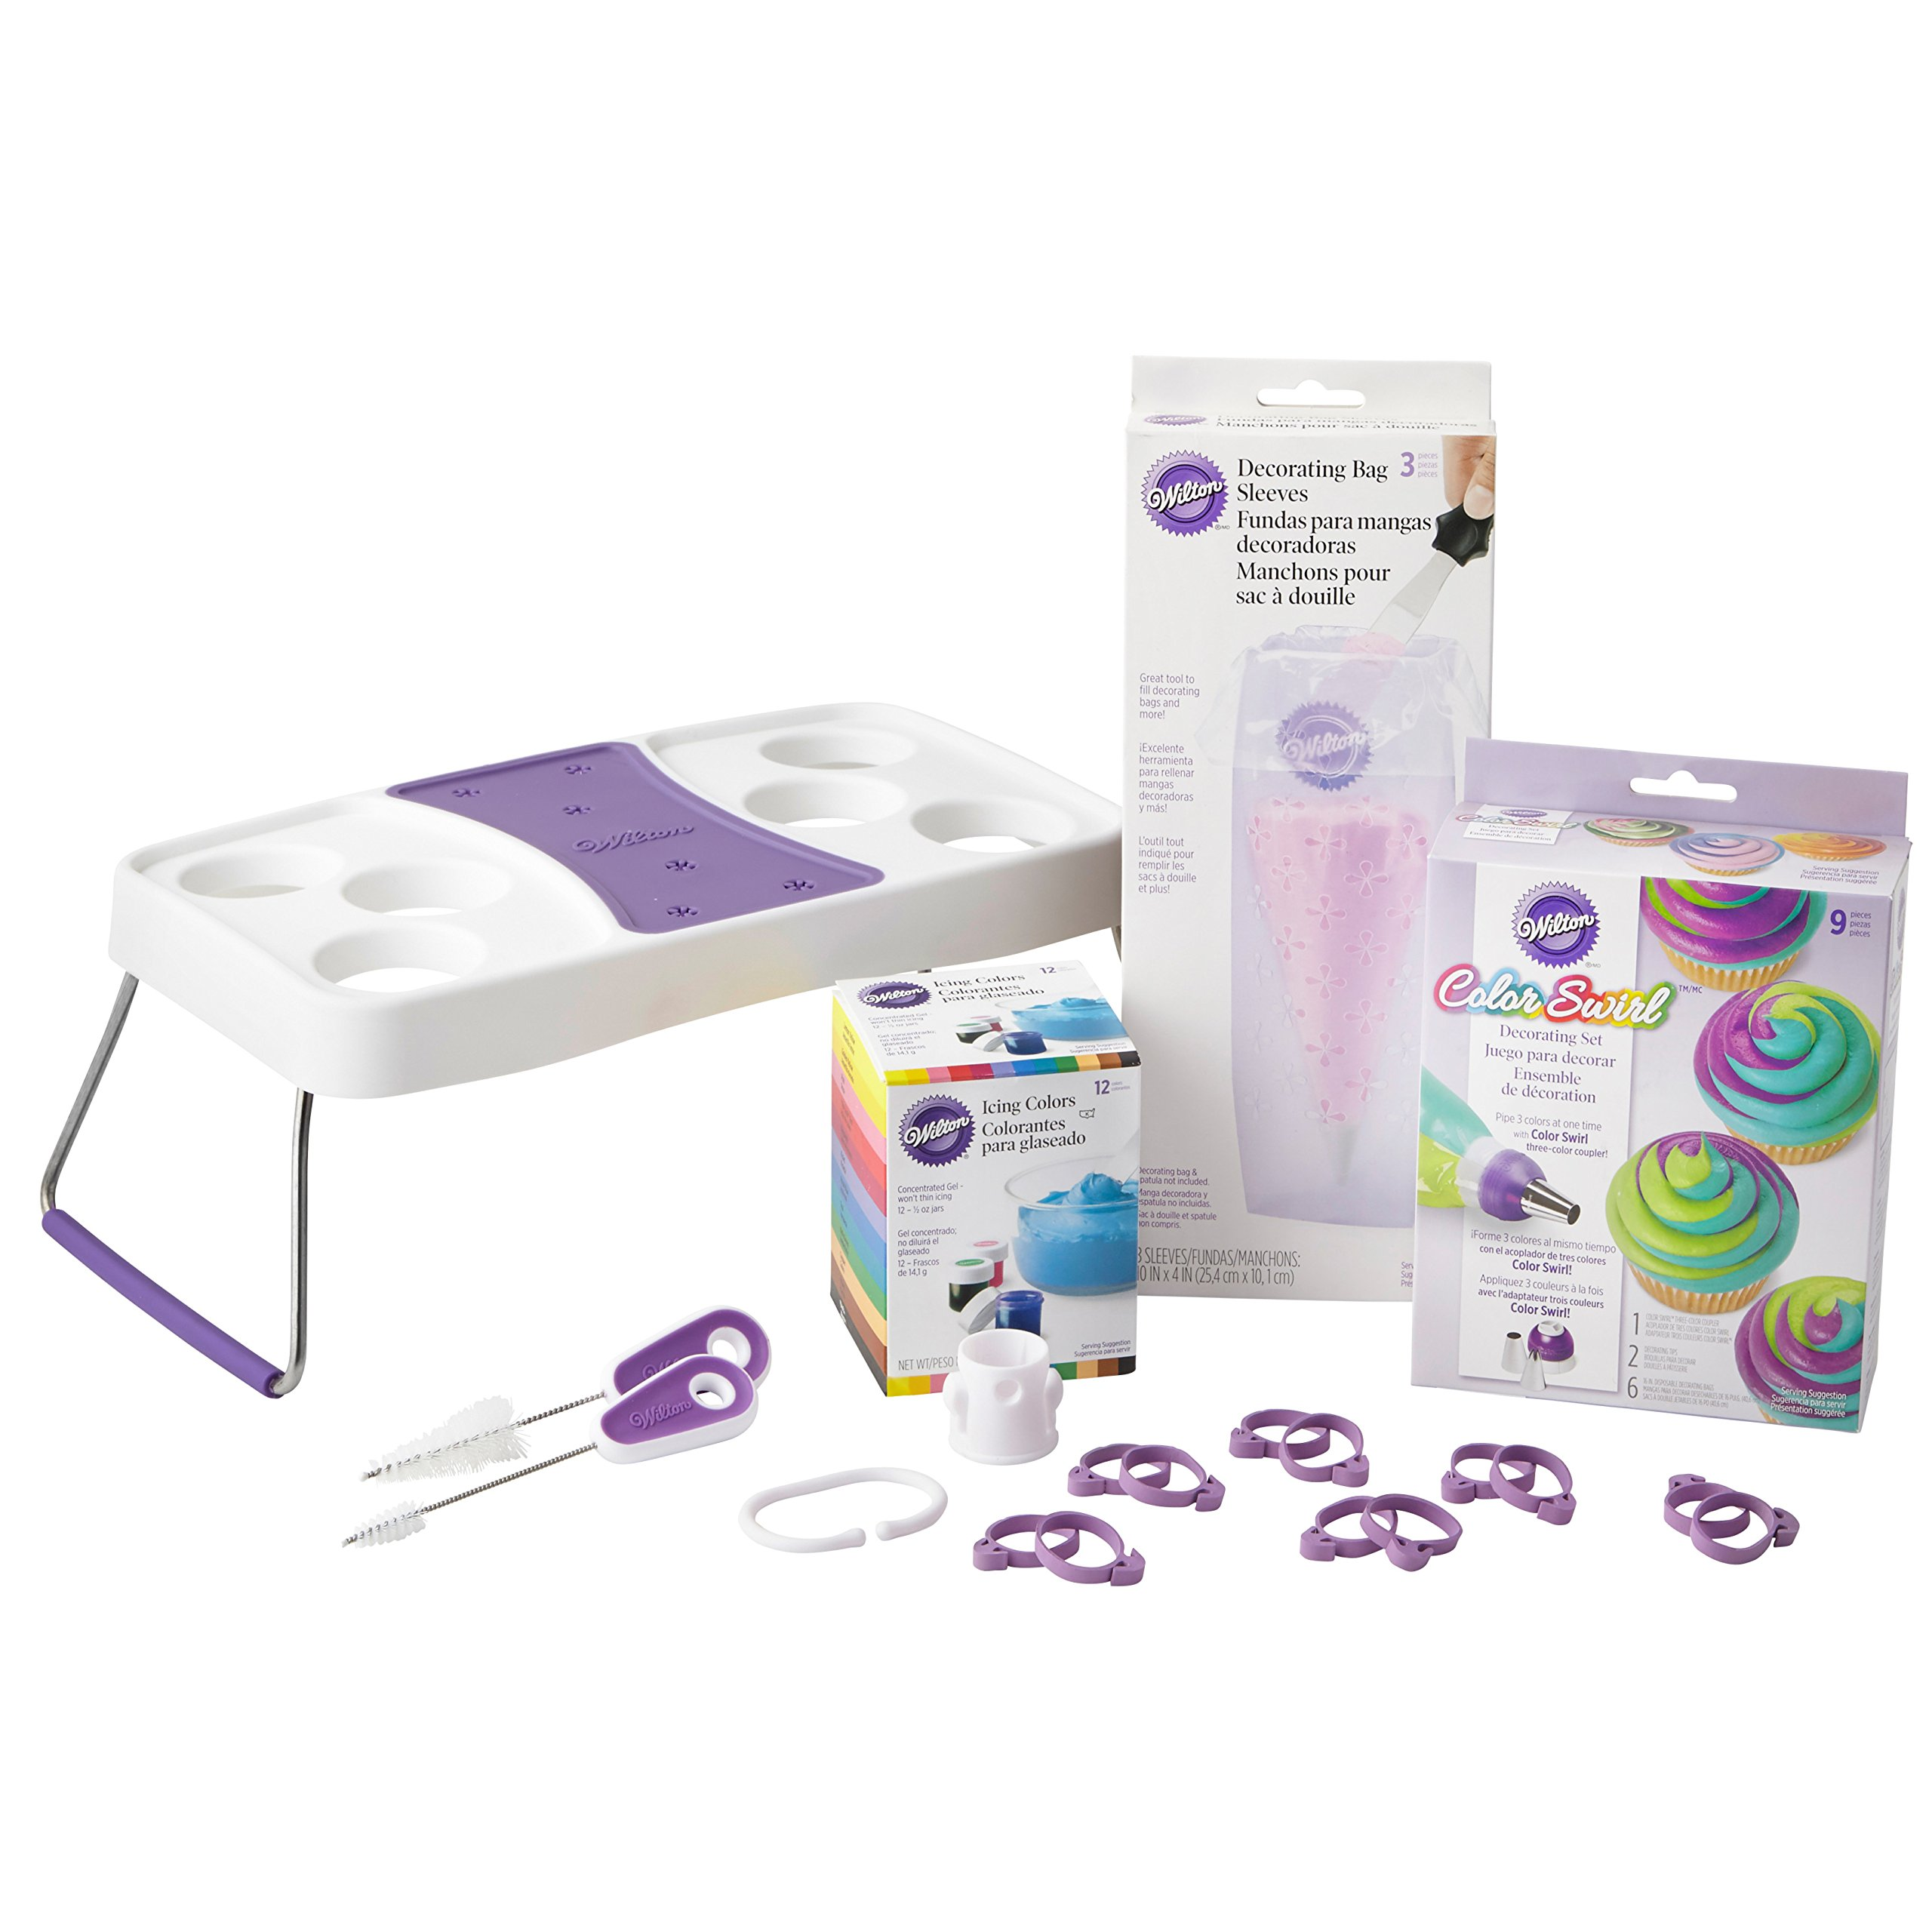 Wilton Color Swirl Cupcake Decorating Supplies Kit, 19-Piece - Color Swirl Three-Color Coupler, Gel-Based Food Colors, Decorating Bag Holder, Icing Bag Ties, Bag Cutter and Brush Set by Wilton